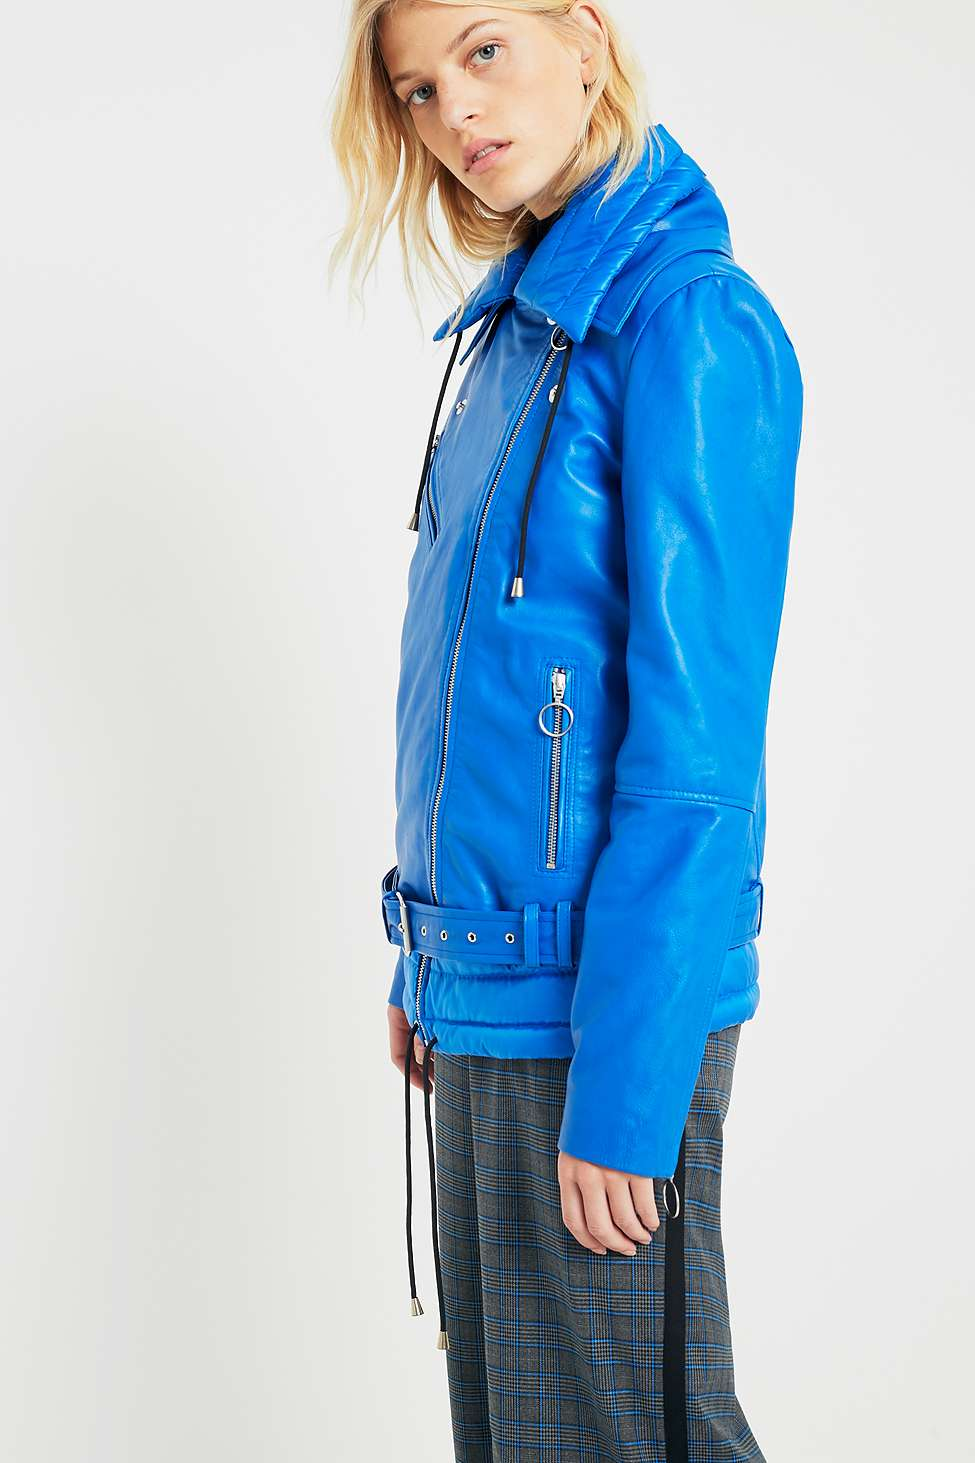 Gestuz Ezra Blue Leather Puffer Jacket | Urban Outfitters